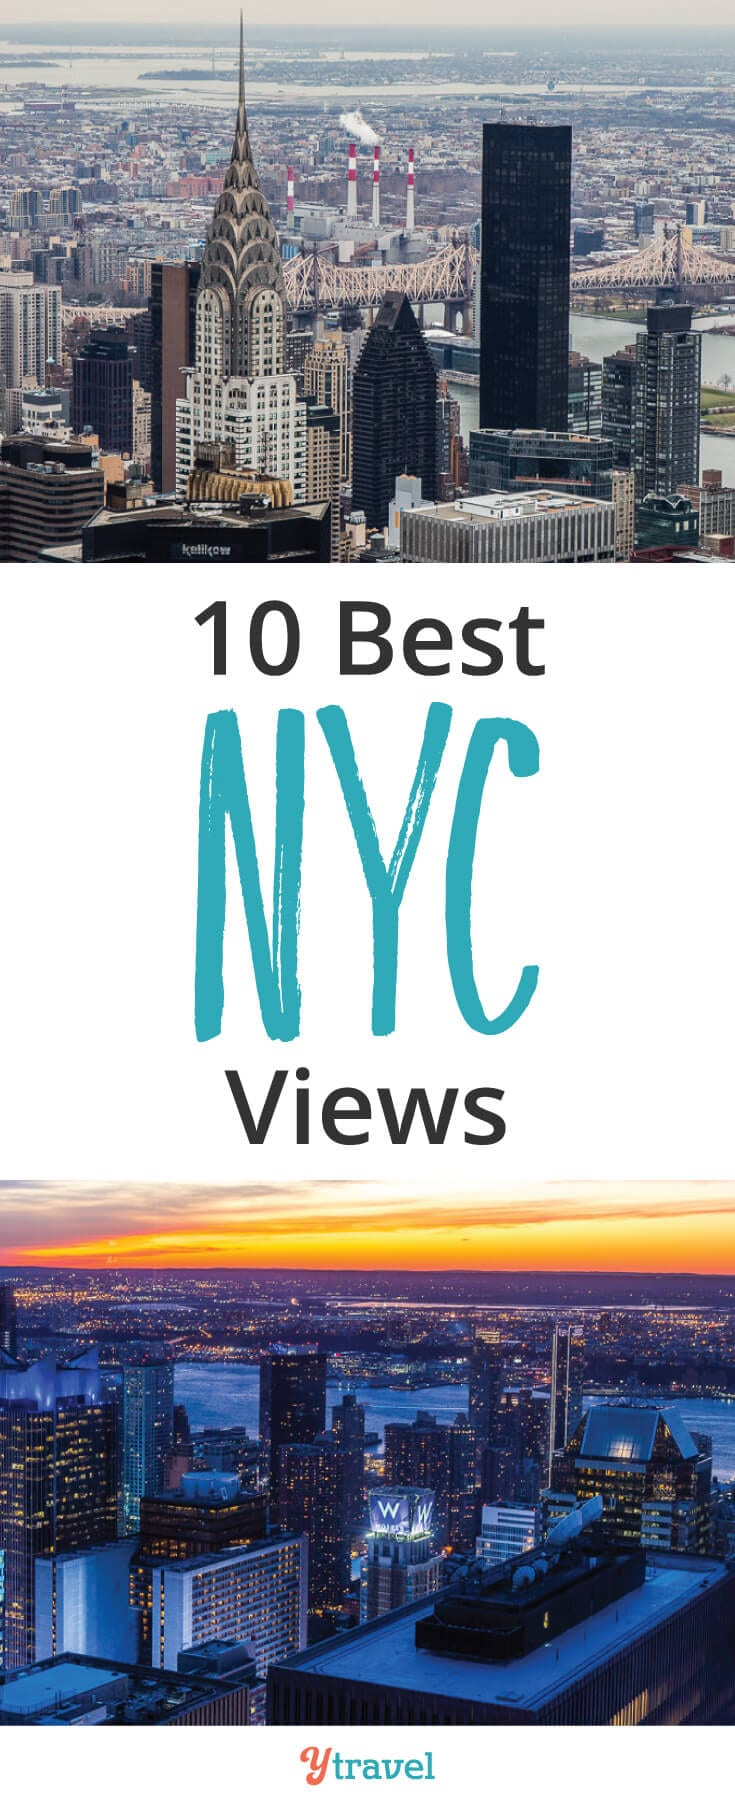 New York City has one of the most iconic skylines, check out these 10 best NYC views.